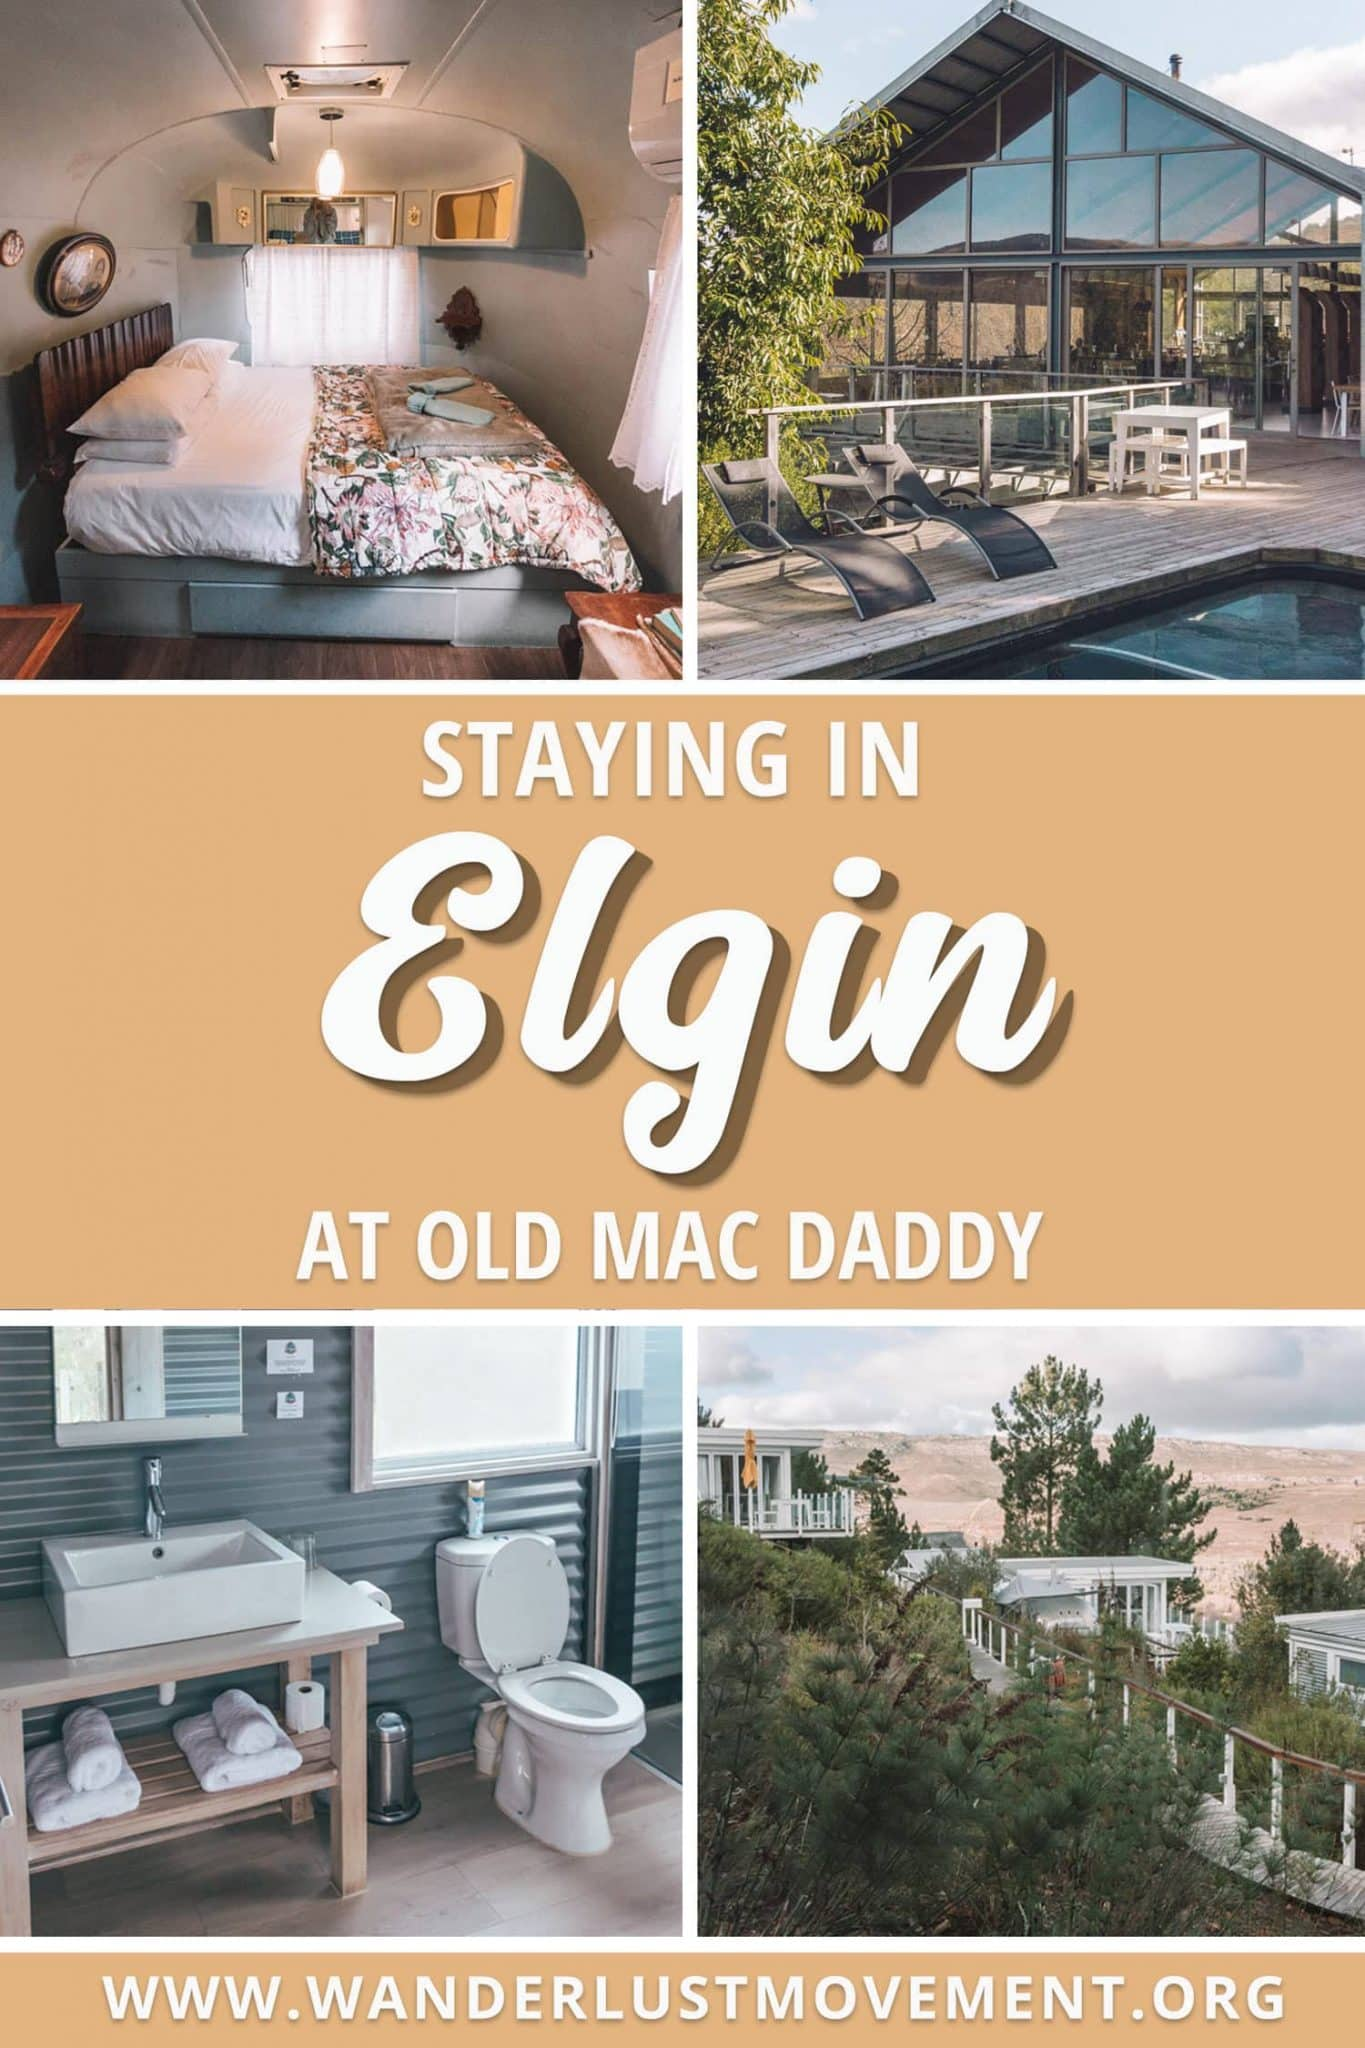 Staying at Old Mac Daddy in Elgin